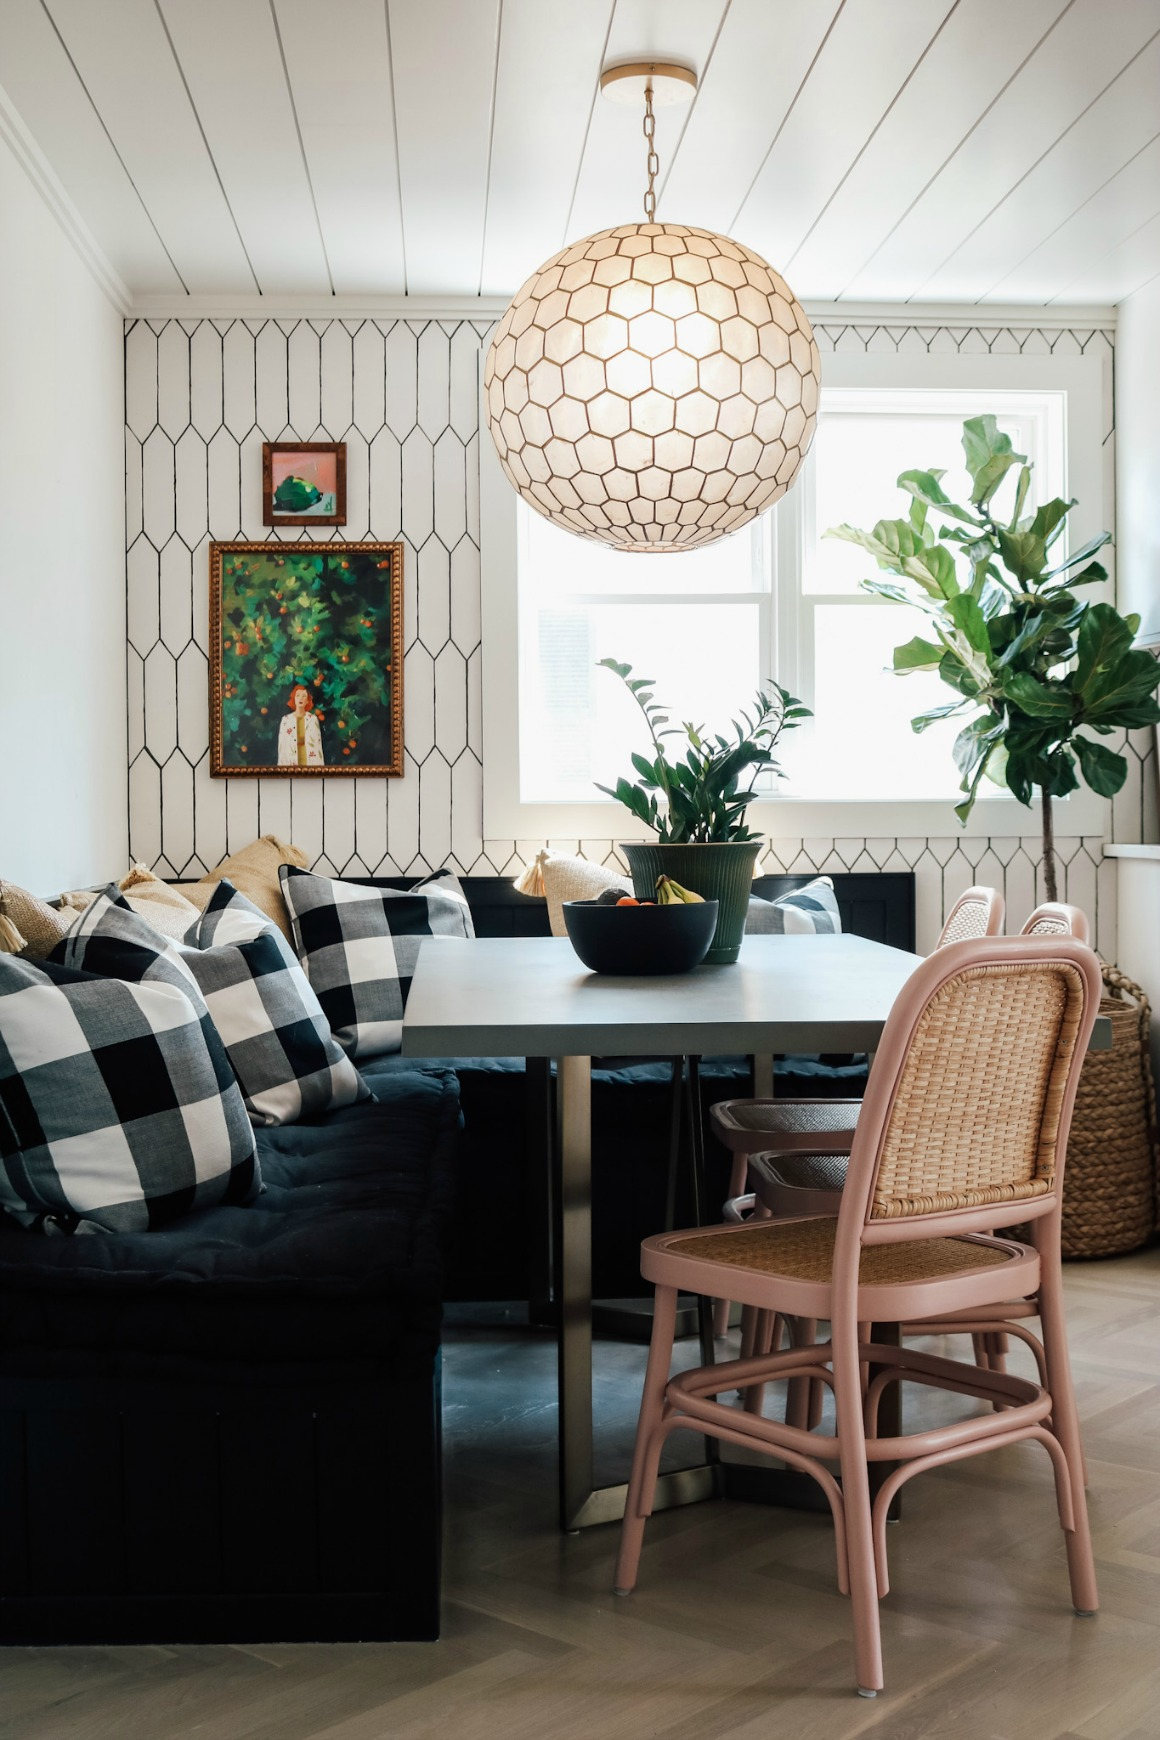 Our New Banquette Dining Space- Remodel Reveal